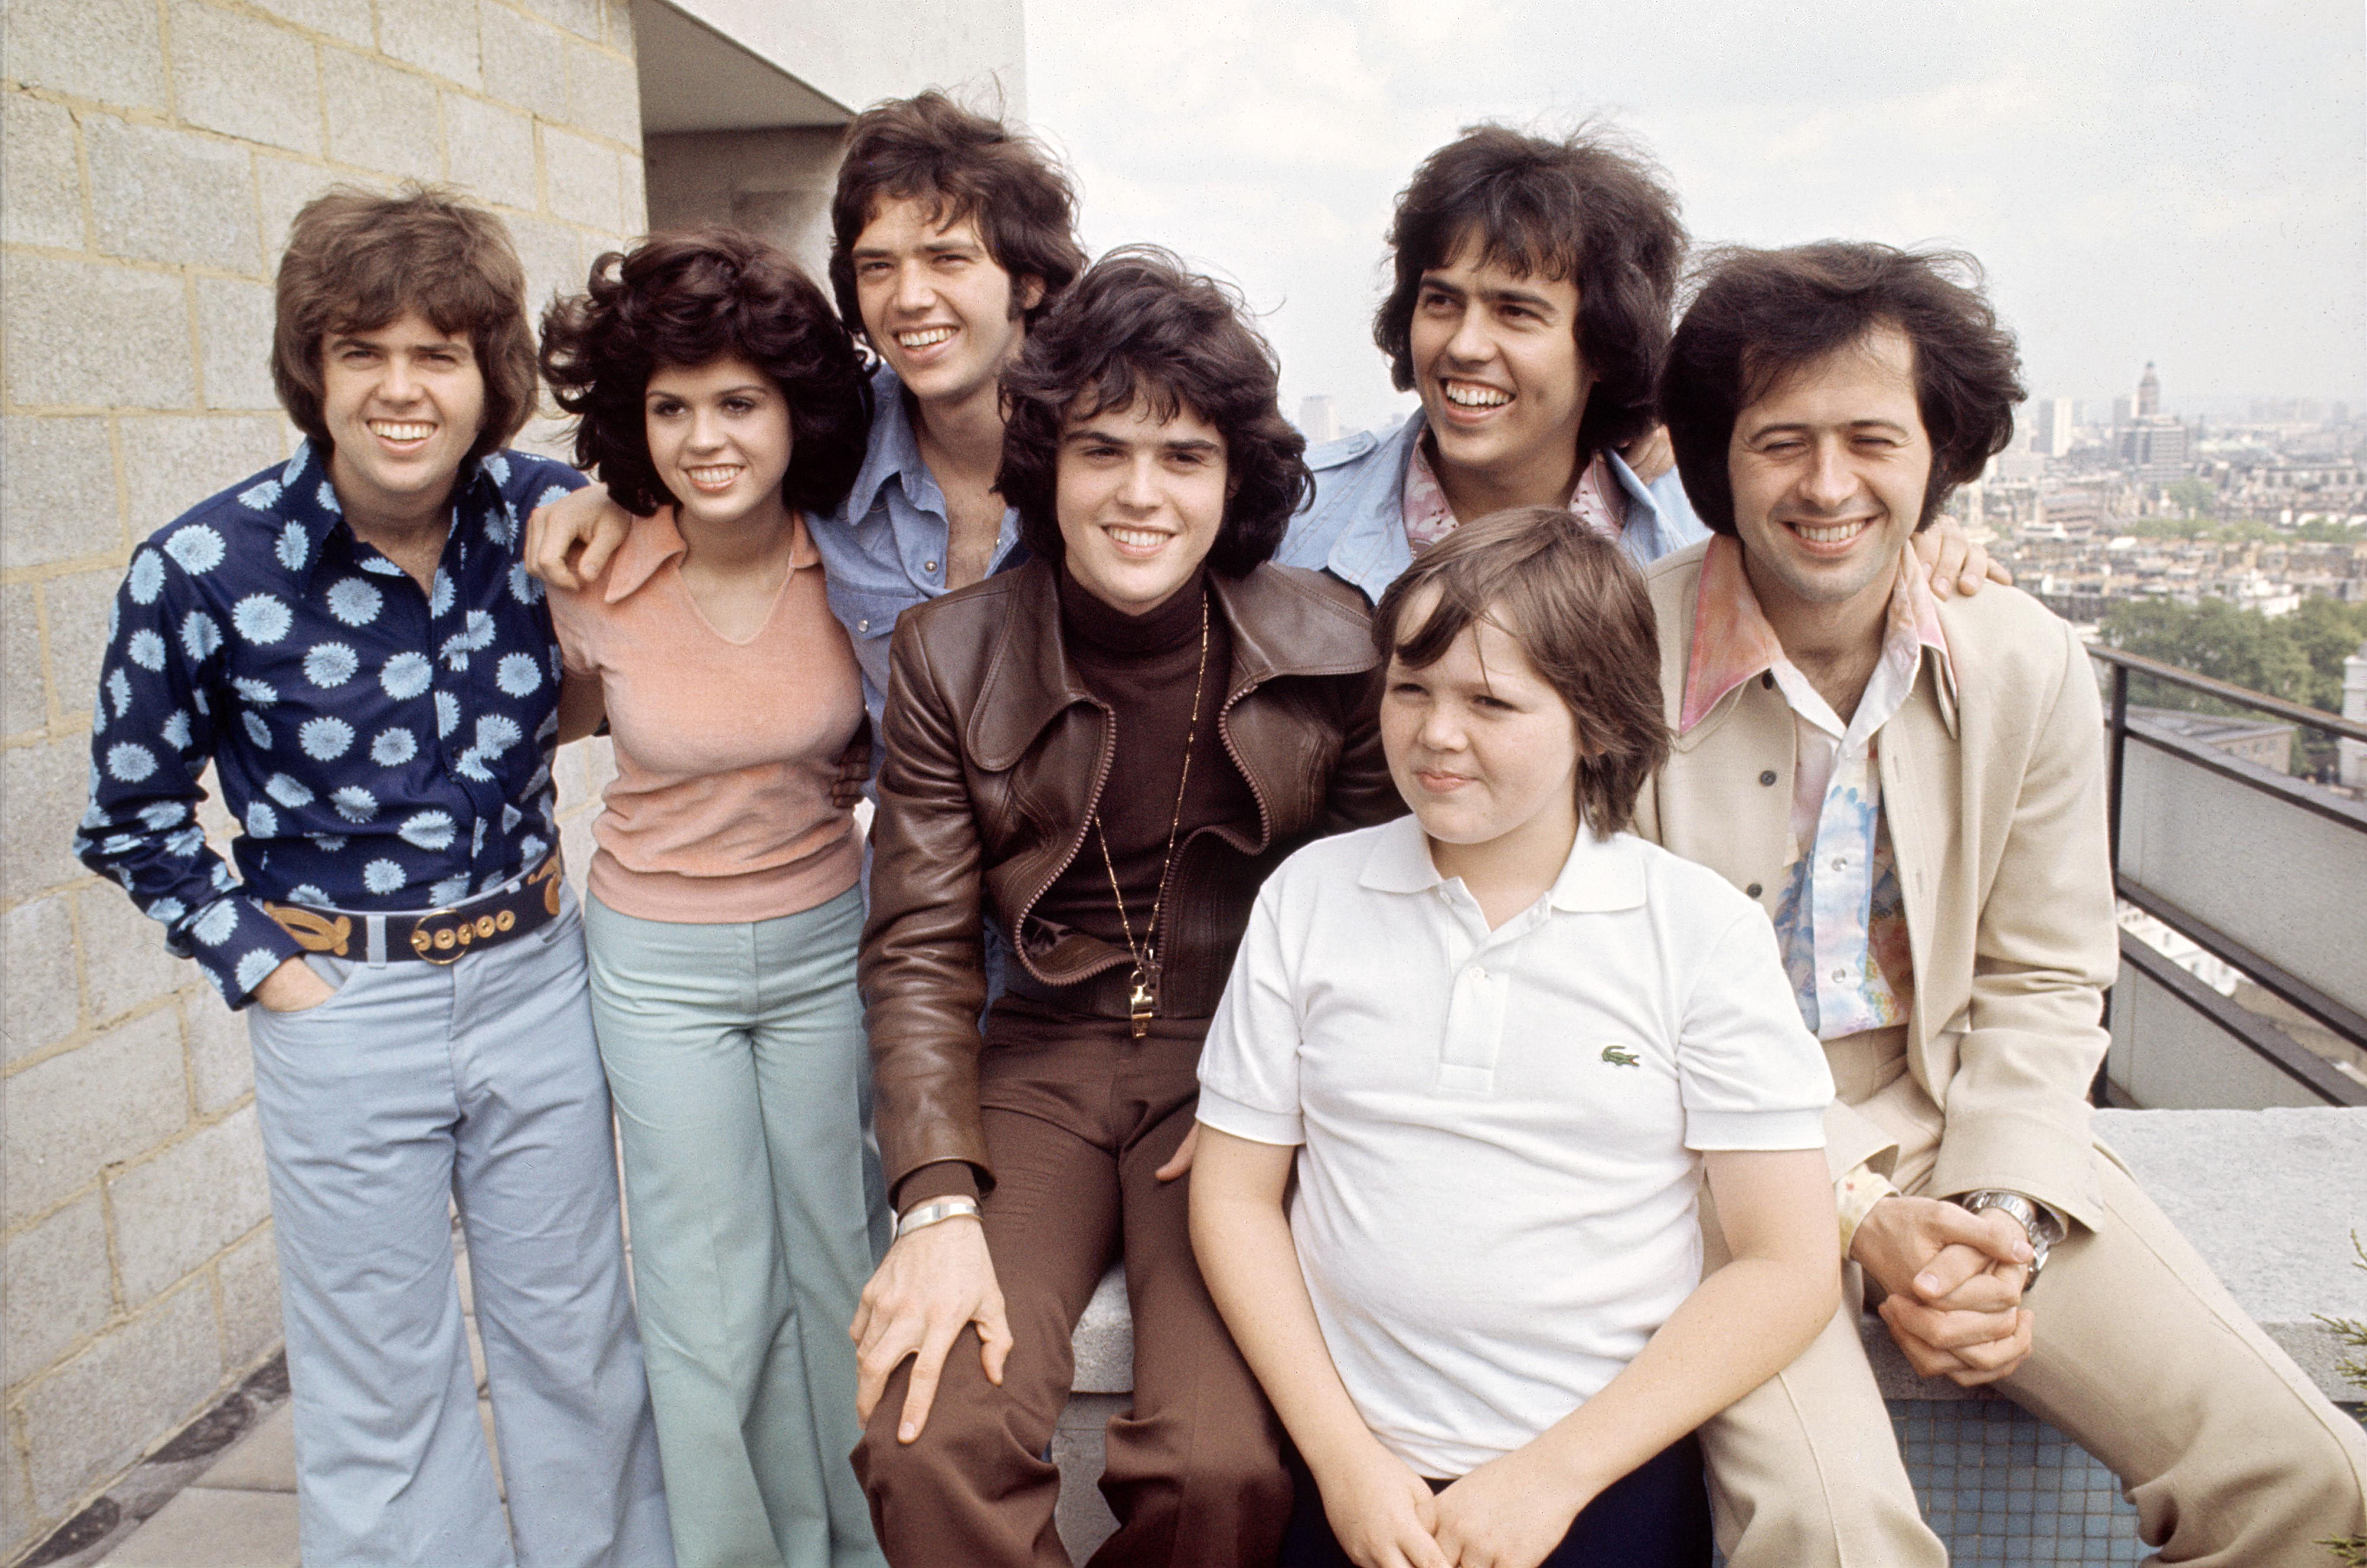 Marie Osmond Reveals the 4 Original Osmond Brothers Will Perform for the Very Last Time Together